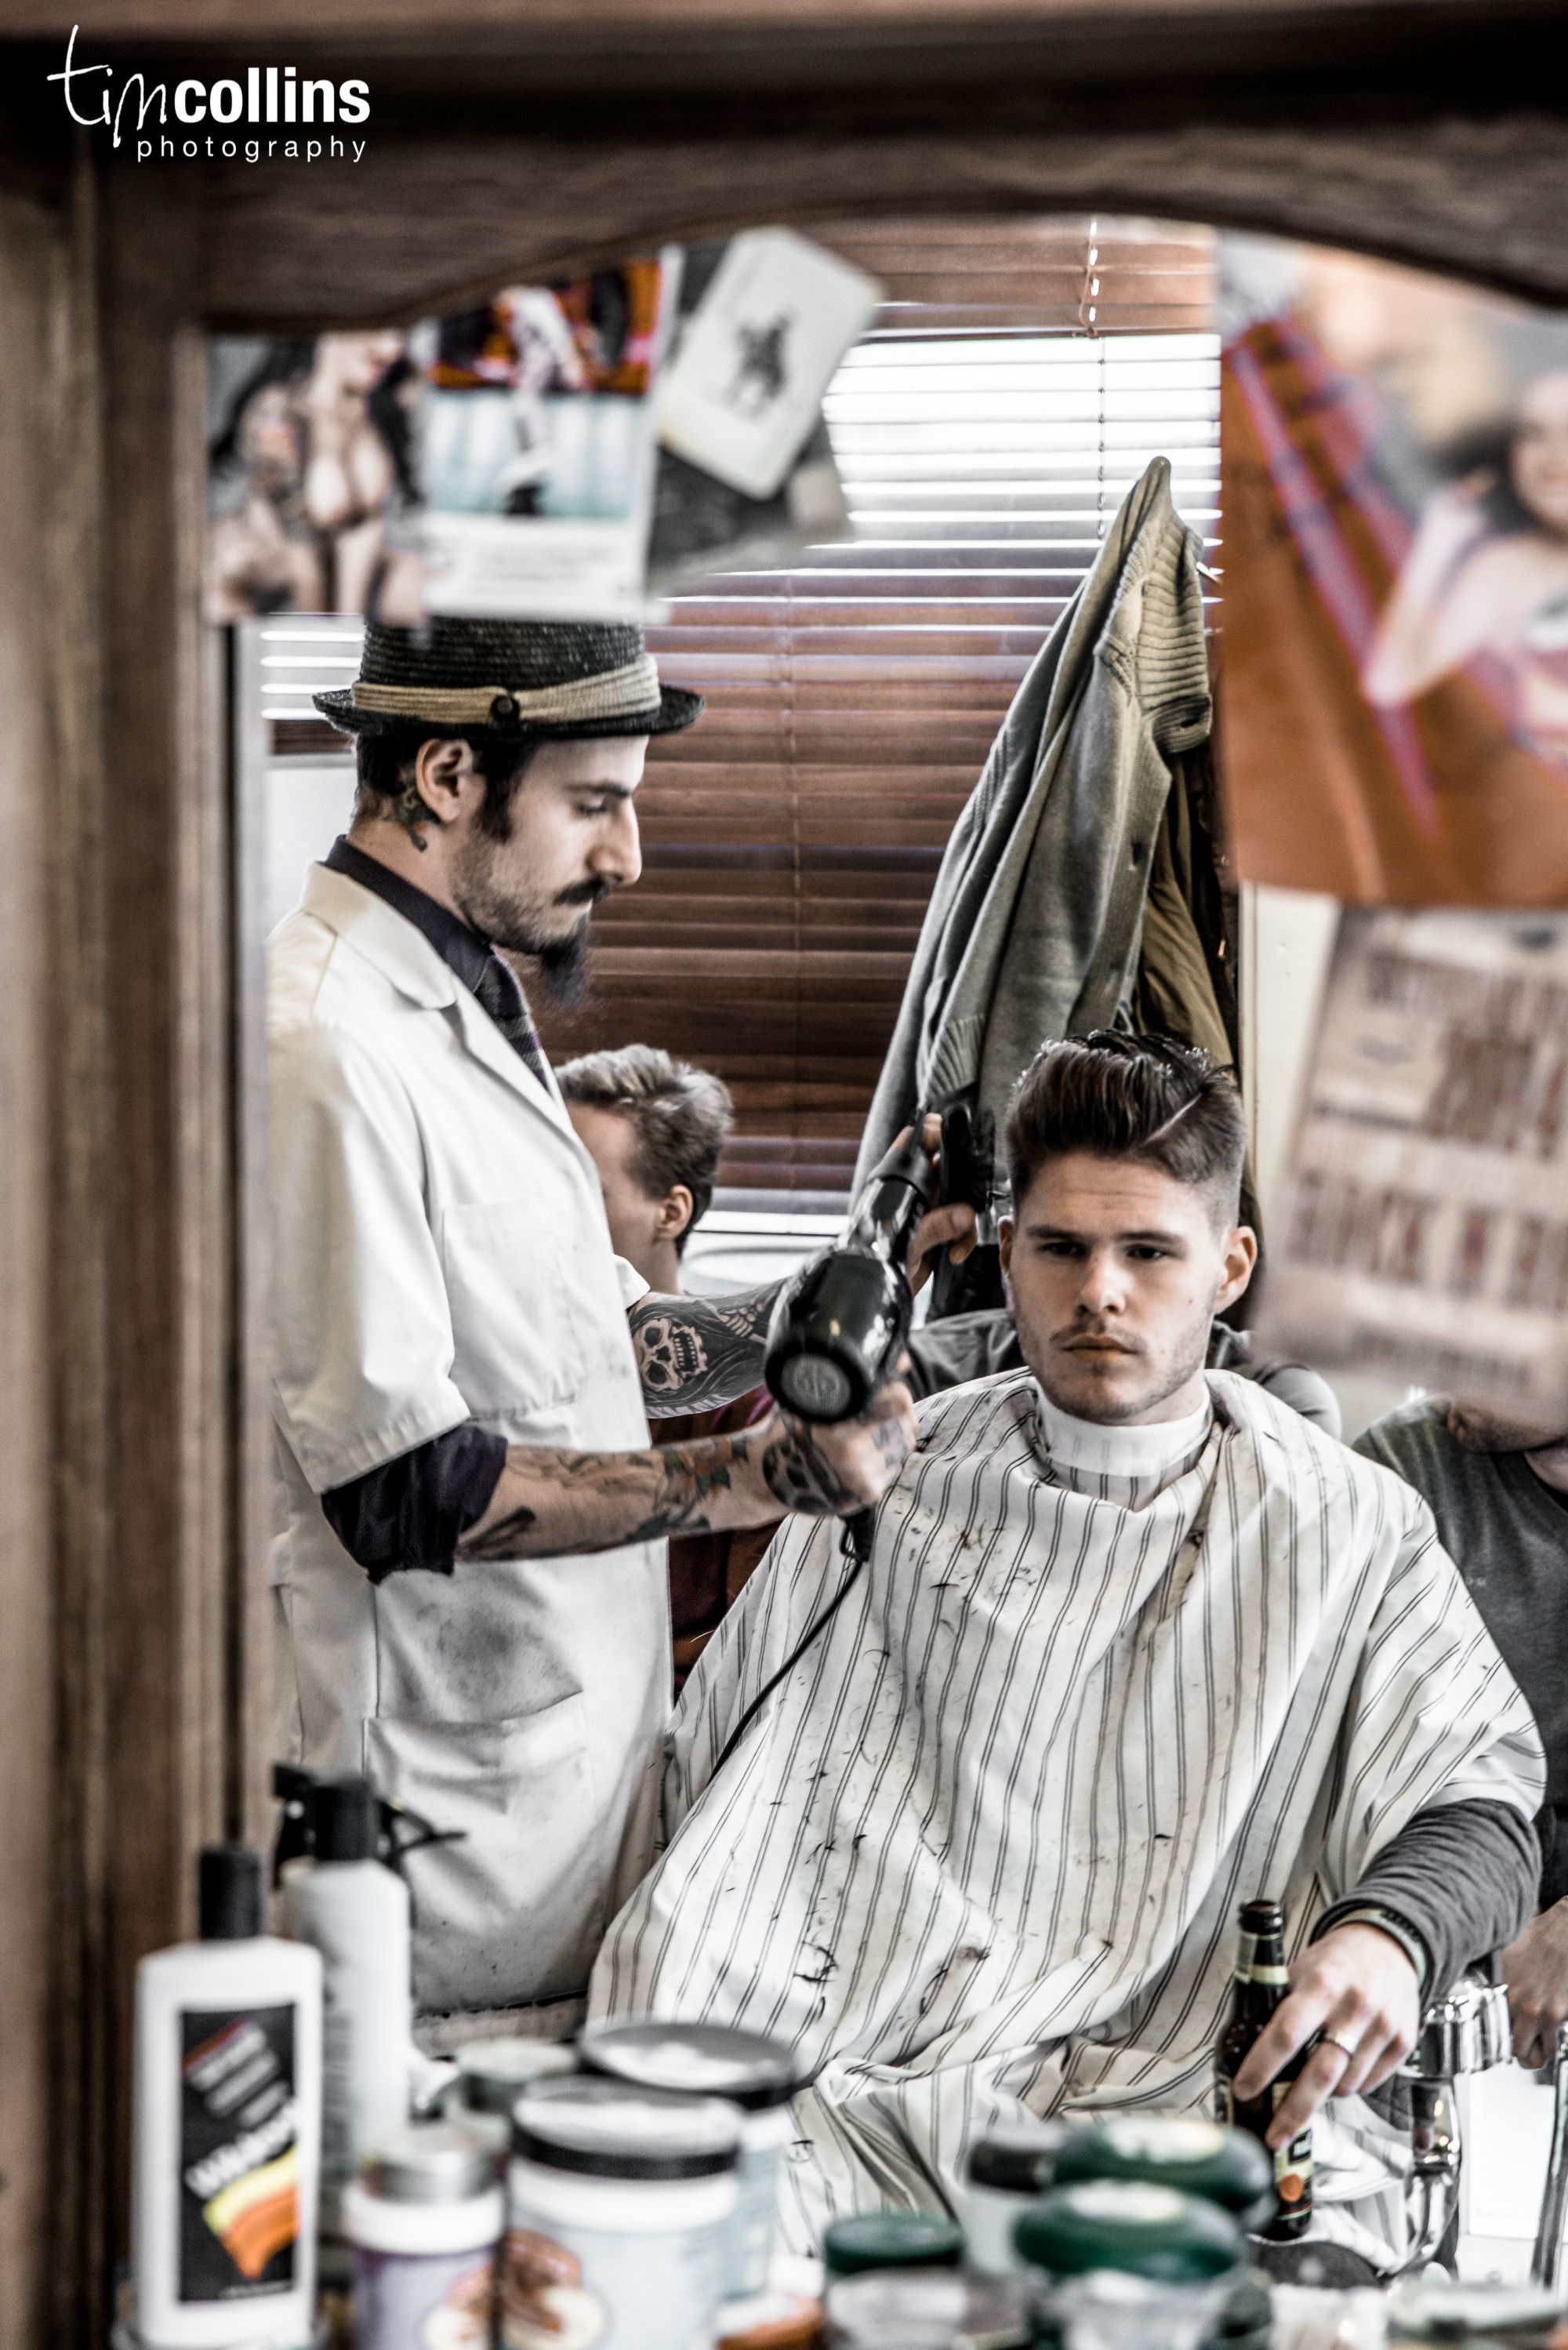 Schorem Barber Shop - Rotterdam by Tim Collins Photography